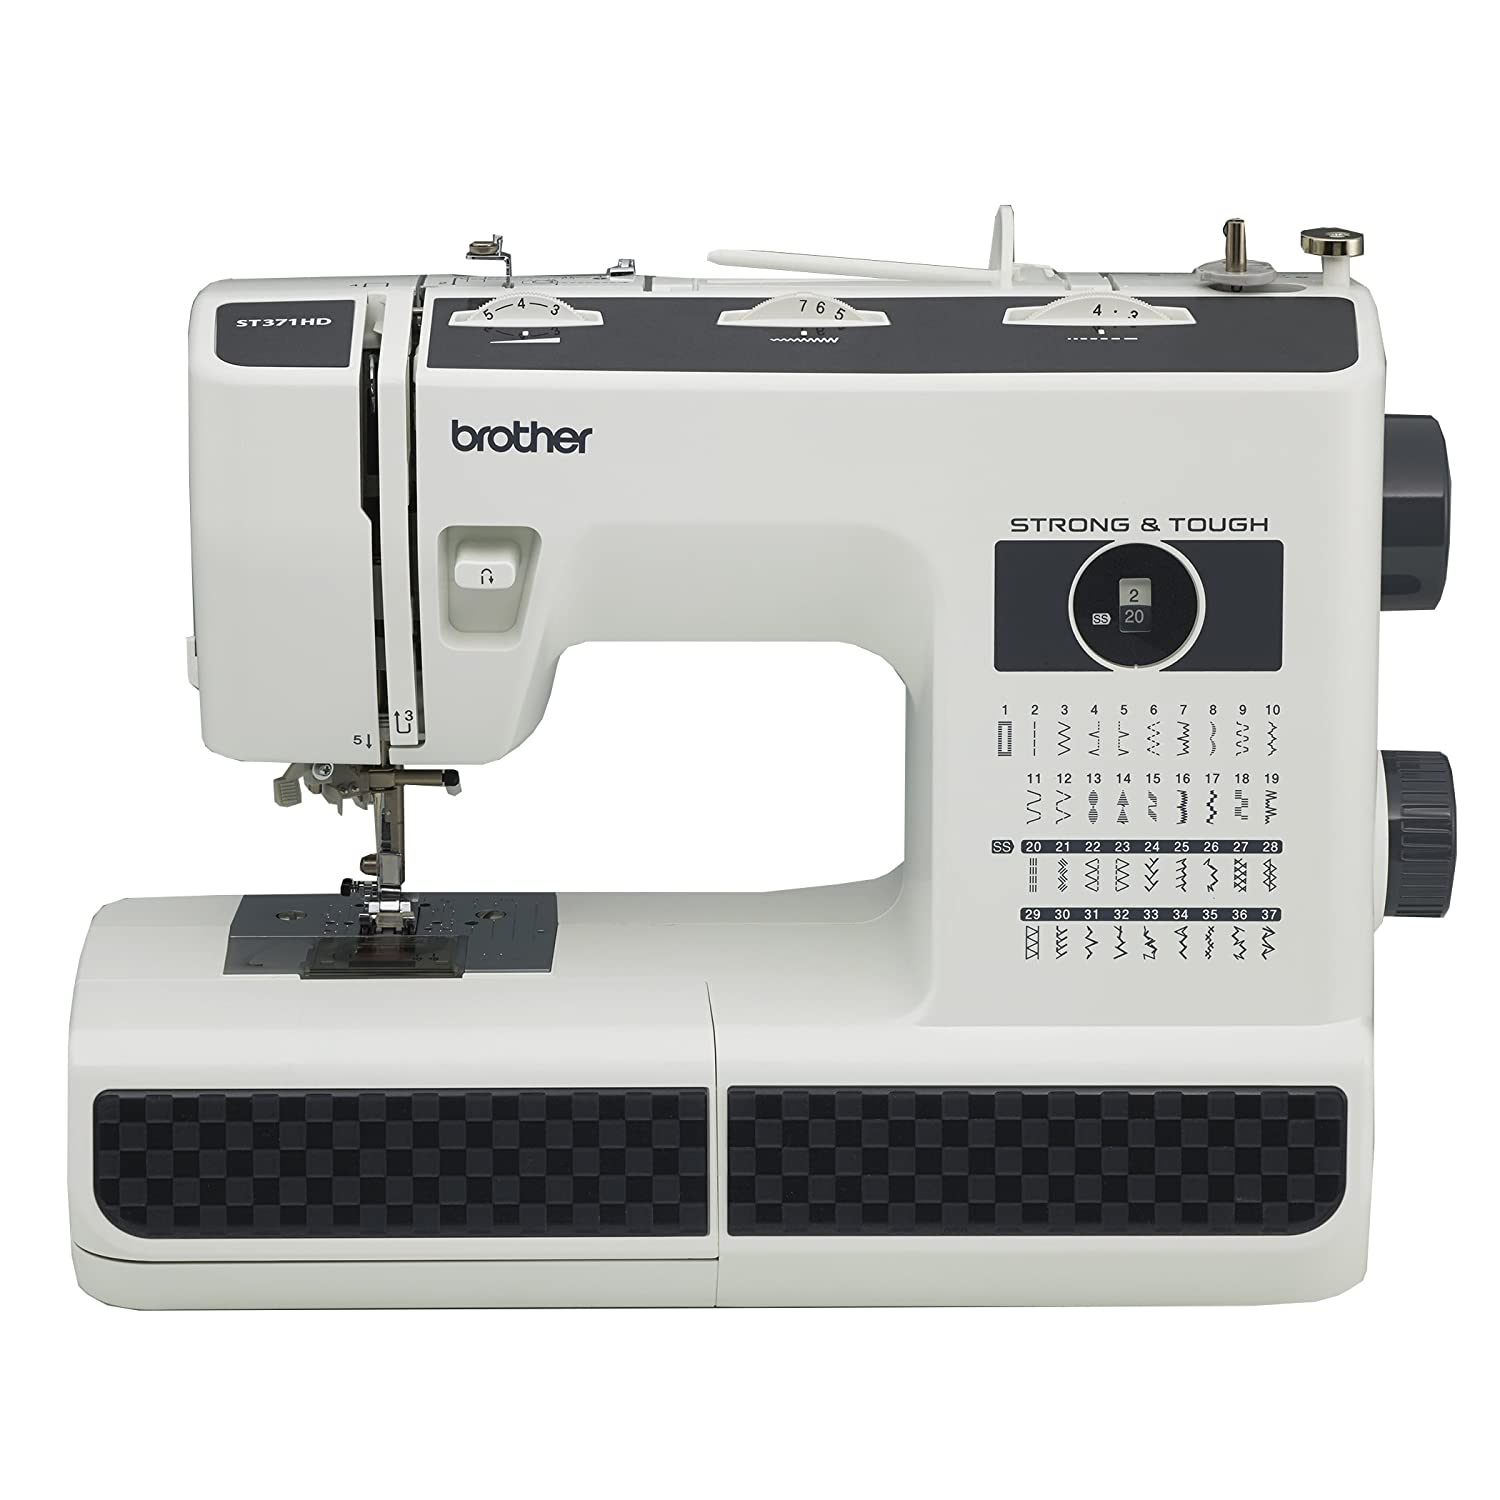 Brother ST371HD - Strong and tough sewing machine